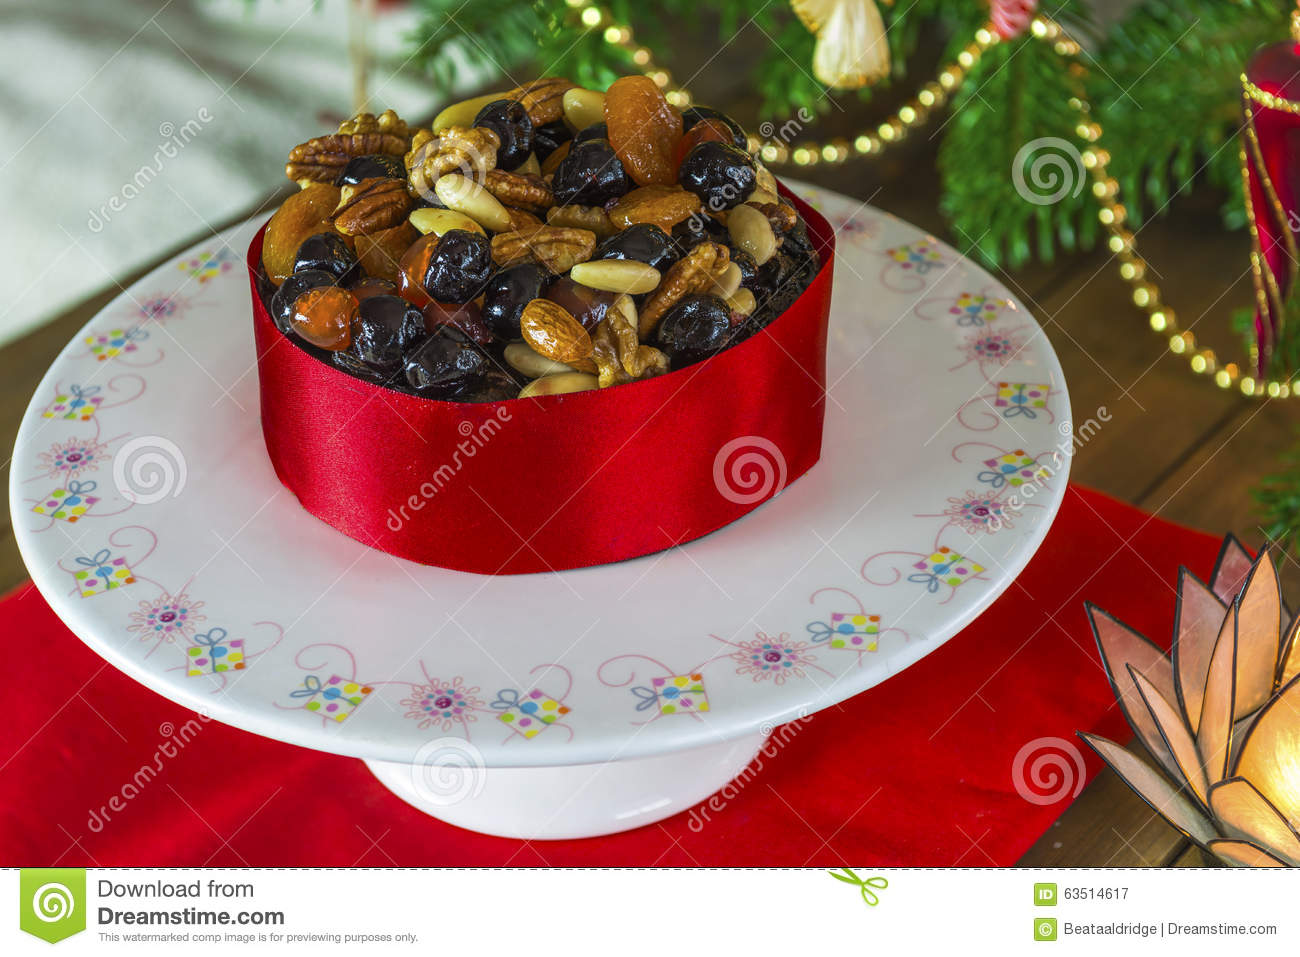 Christmas Cake Decoration With Fruit And Nuts : Christmas Fruit And Nut Cake Stock Photo - Image: 63514617